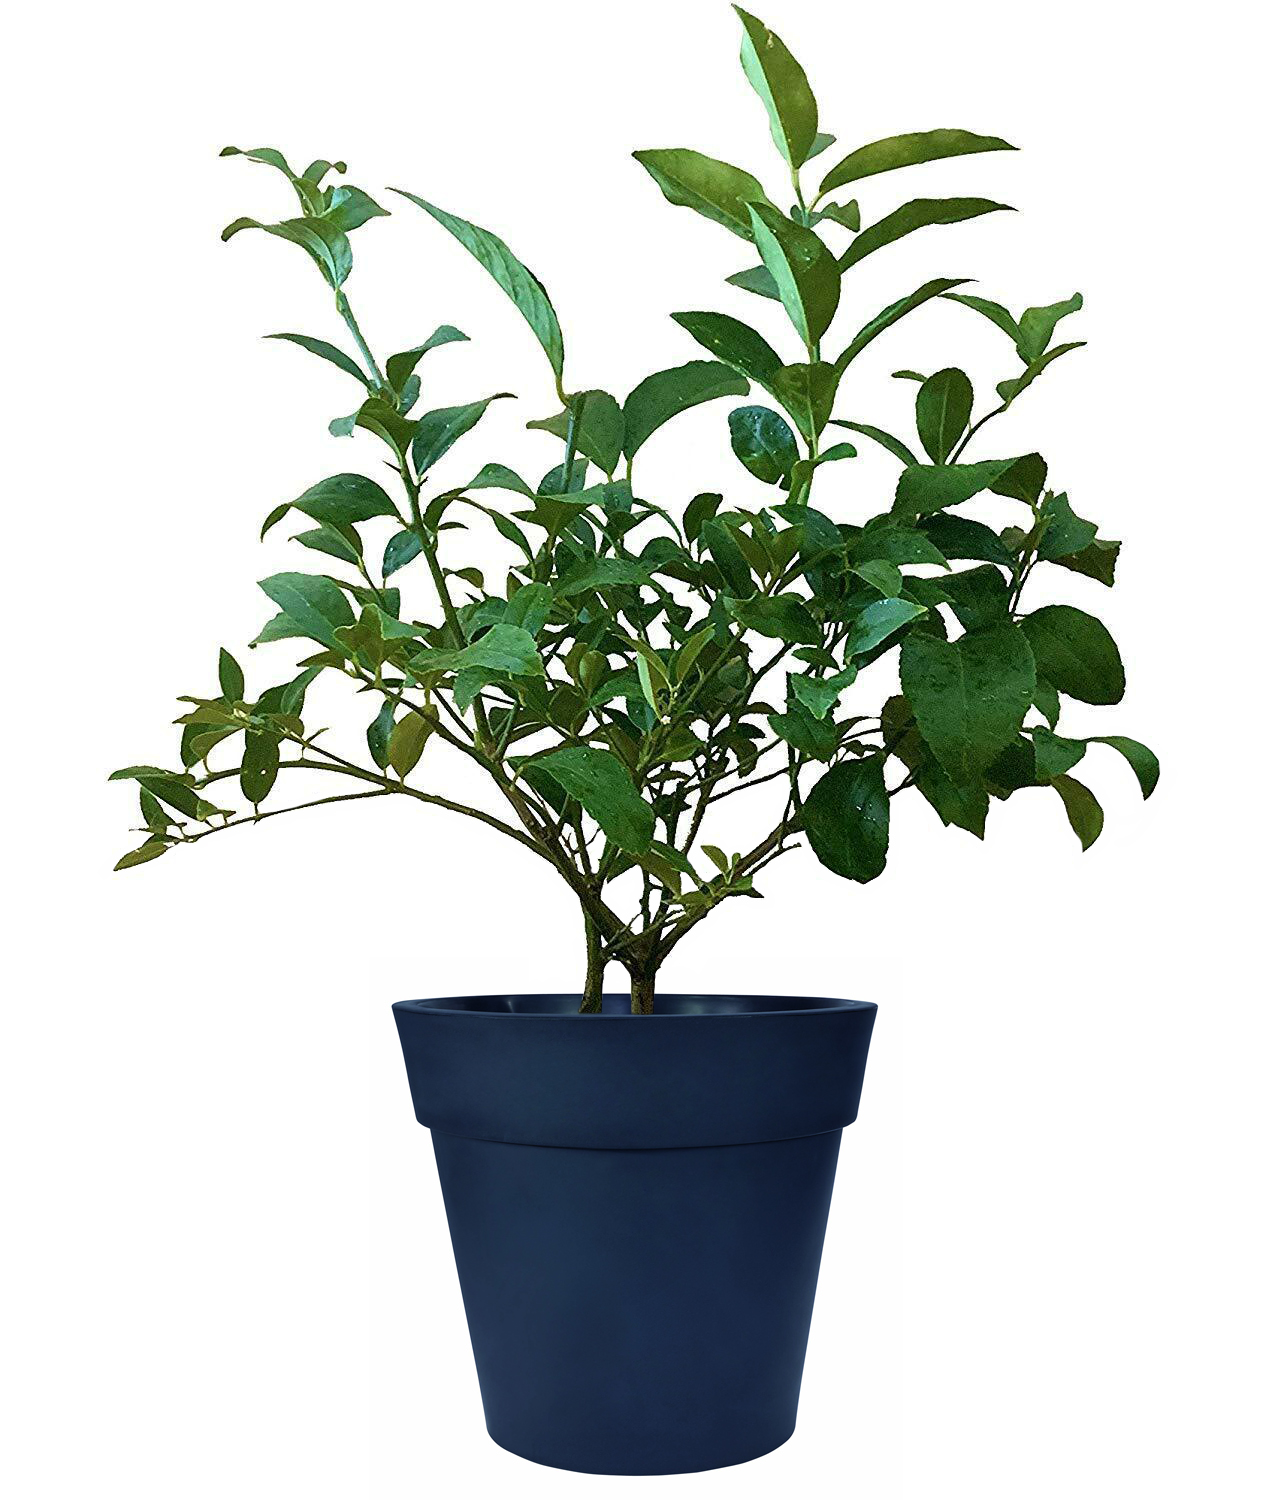 Cocktail Tree - (2 in 1 Meyer Lemon / Persian Lime Tree) (Age: 1 Year, Height: 12 - 16 IN, Ship Method: Delivery)